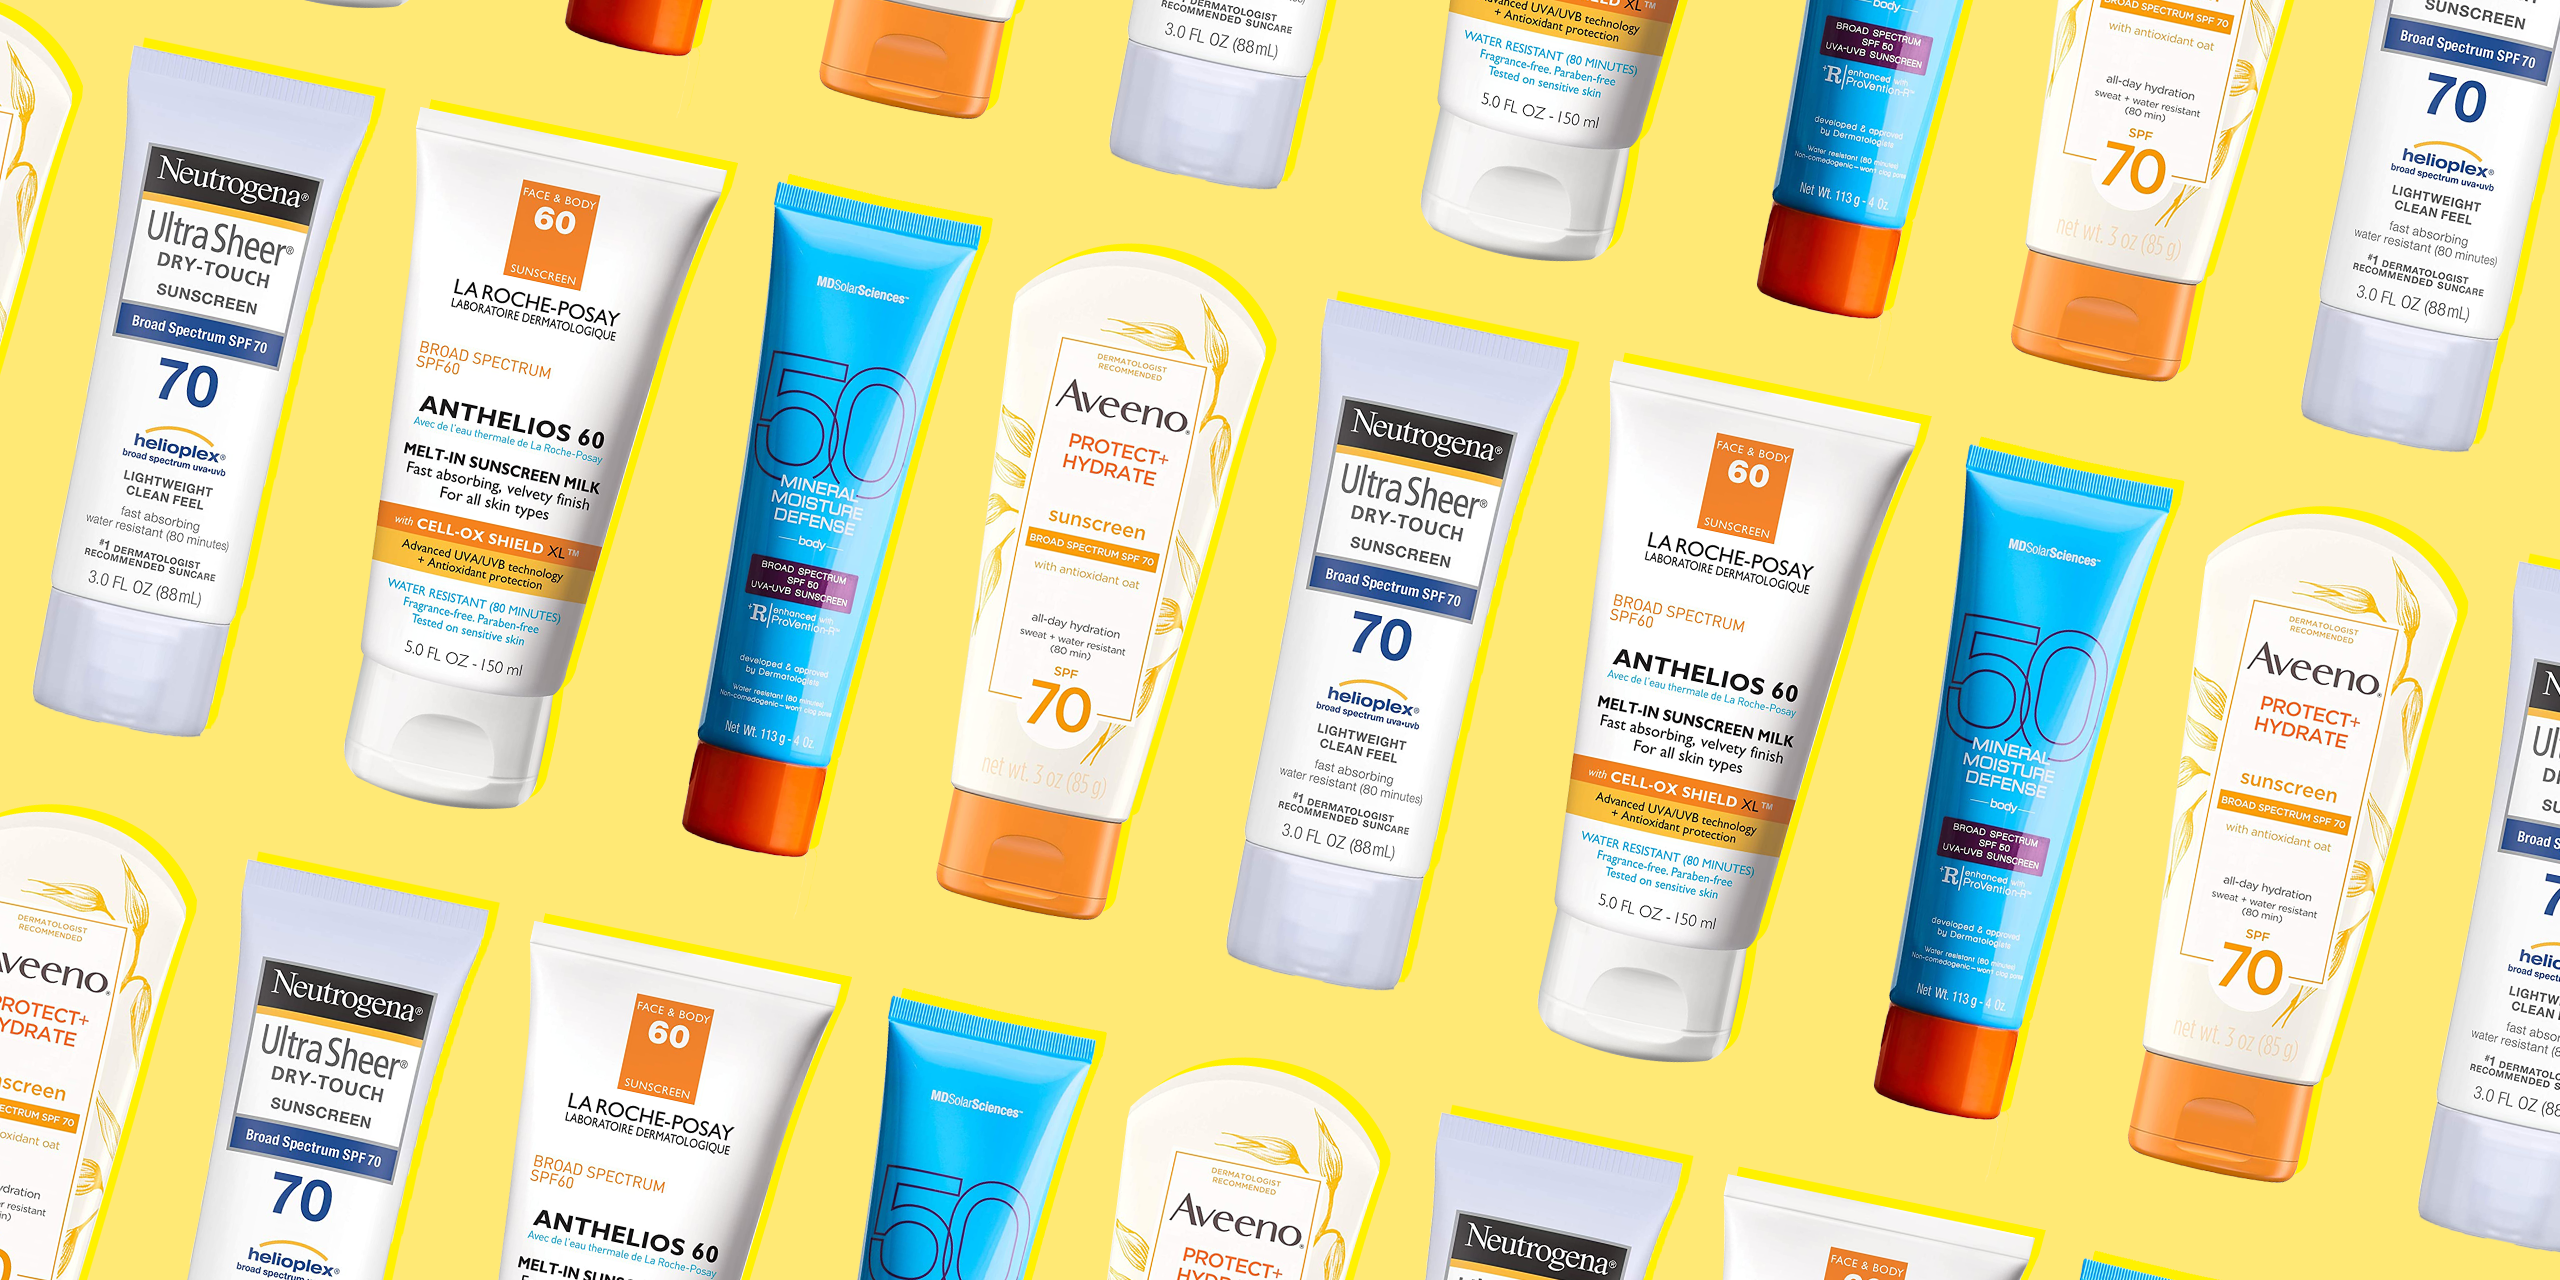 15 Best Sunscreens for Your Skin 2020, According to Dermatologists